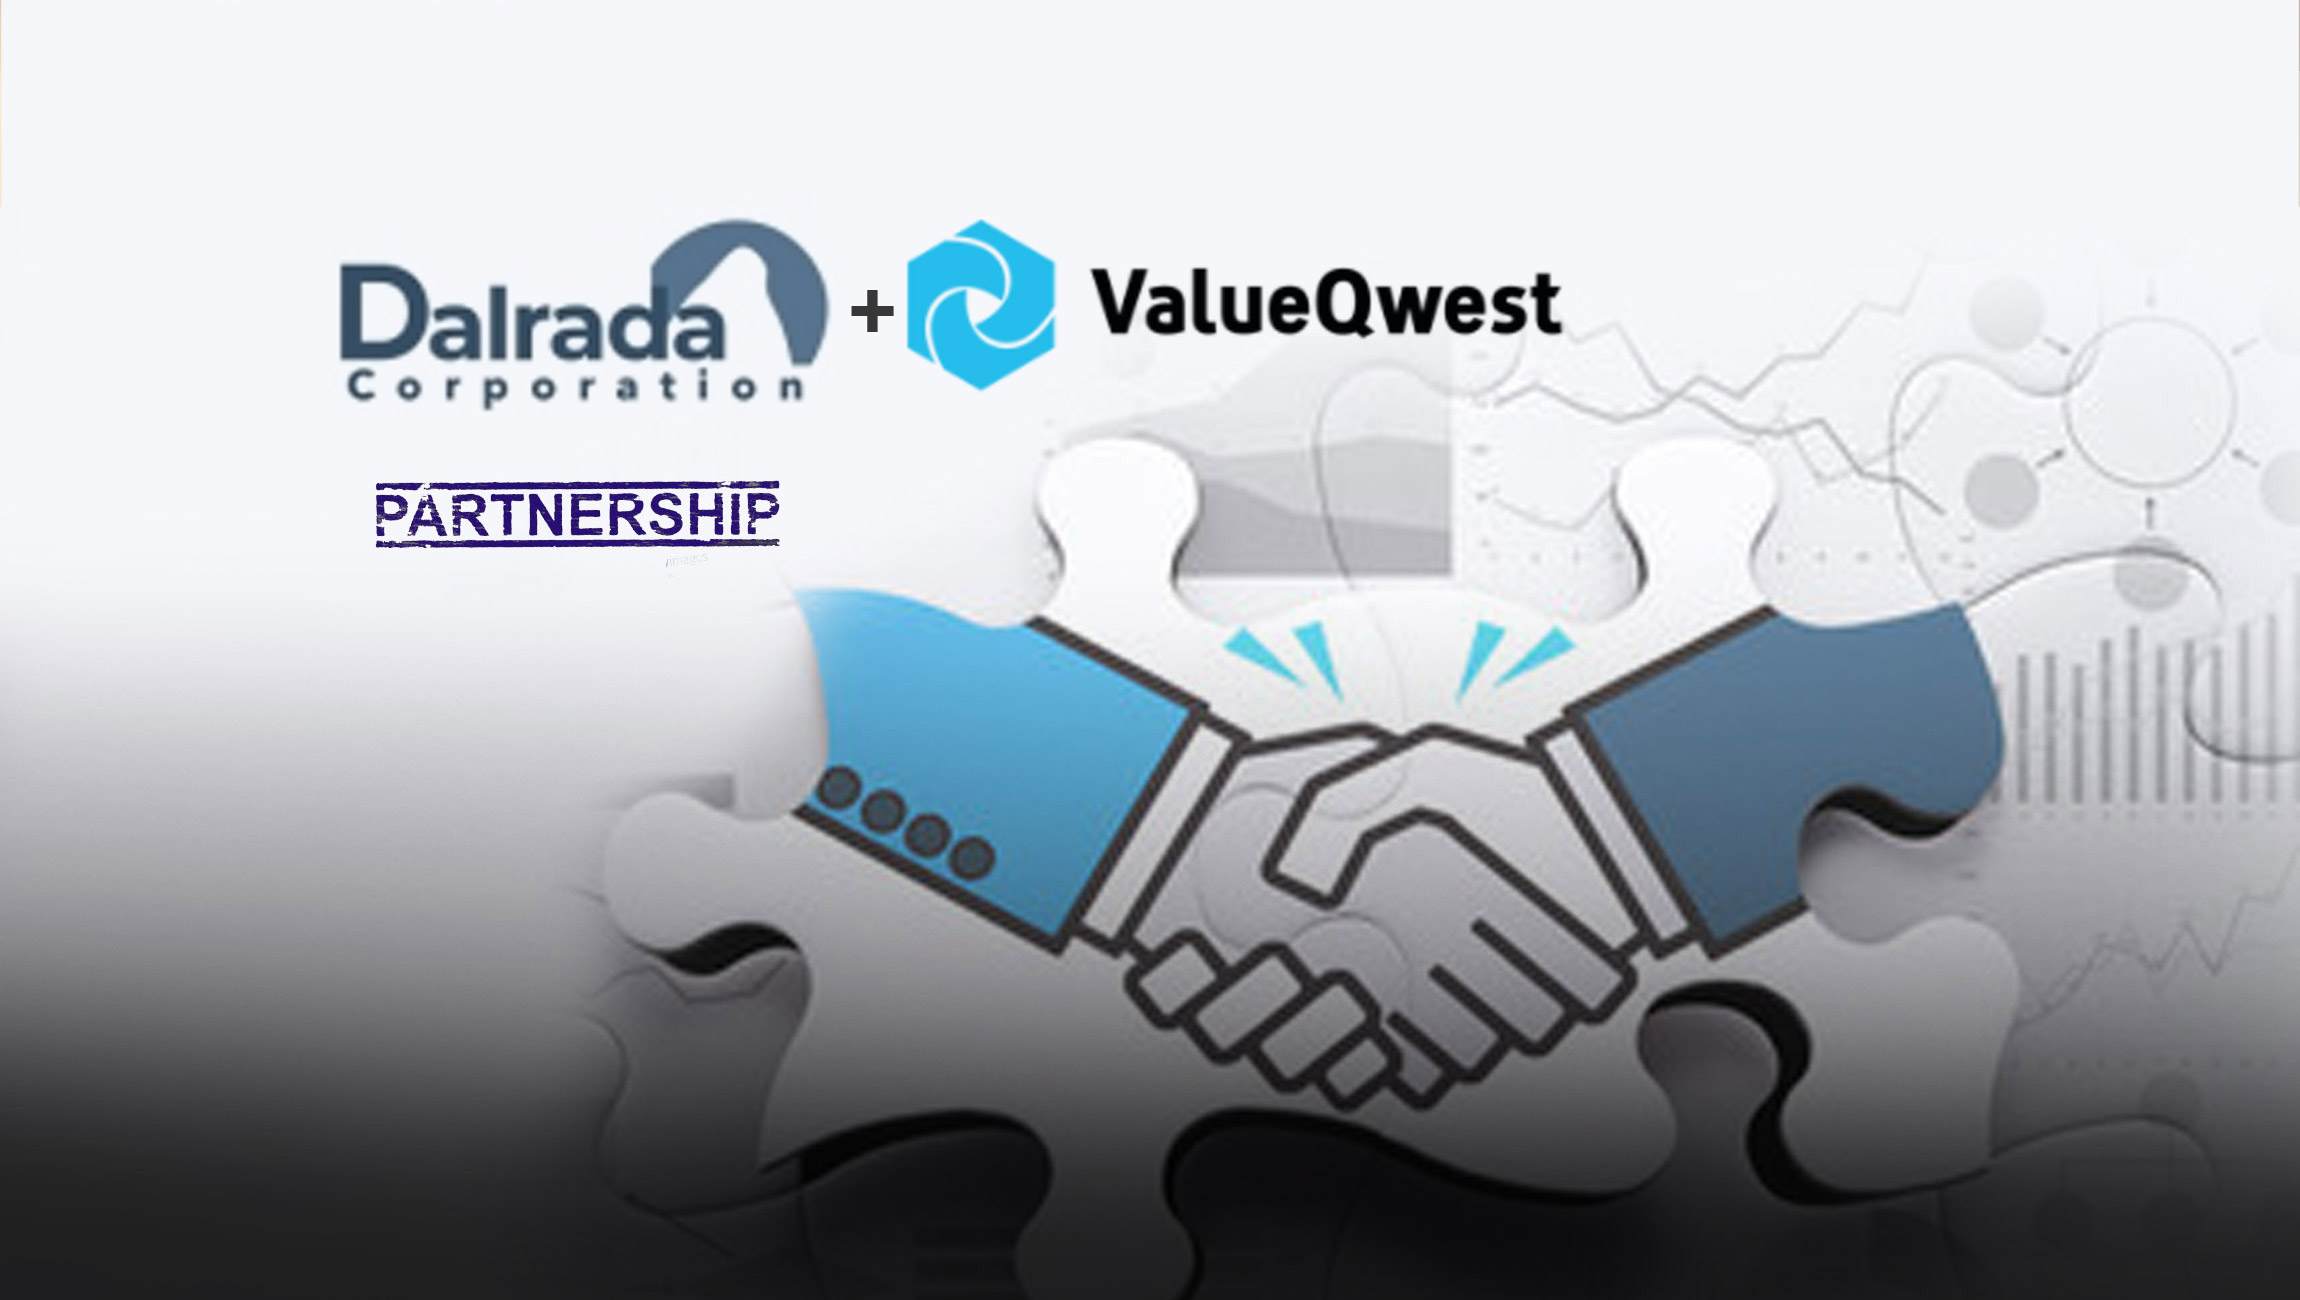 Dalrada's Prakat Solutions Partners With ValueQwest for Digital Transformation of Global Supply Chains